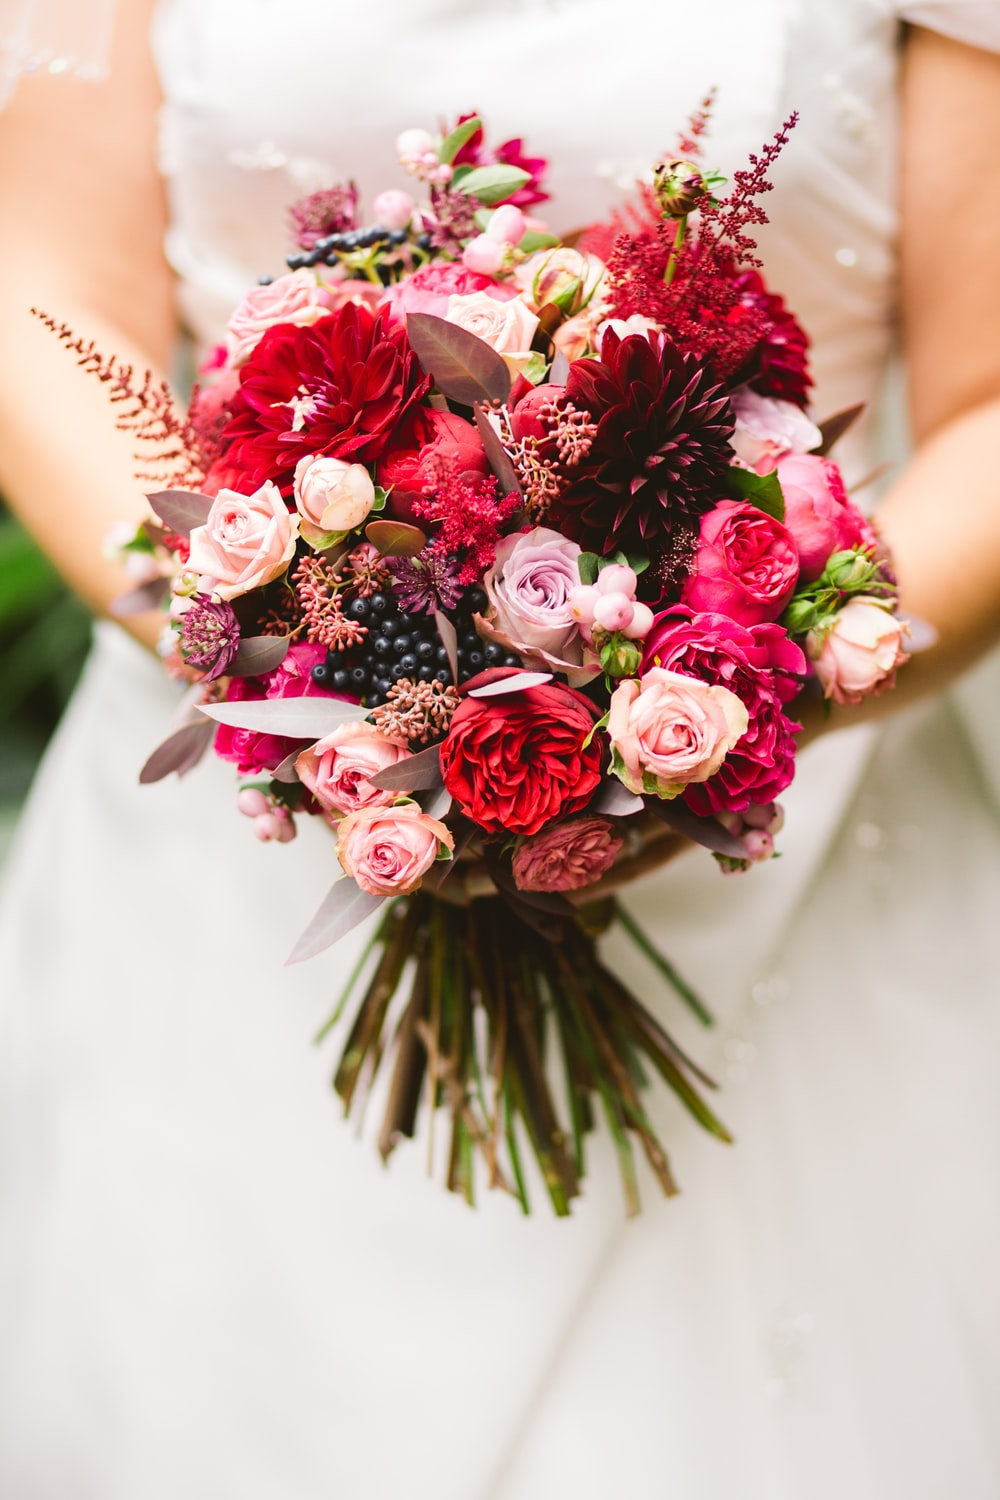 500 bouquet pictures hd download free images on unsplash bride holding flower bouquet izmirmasajfo